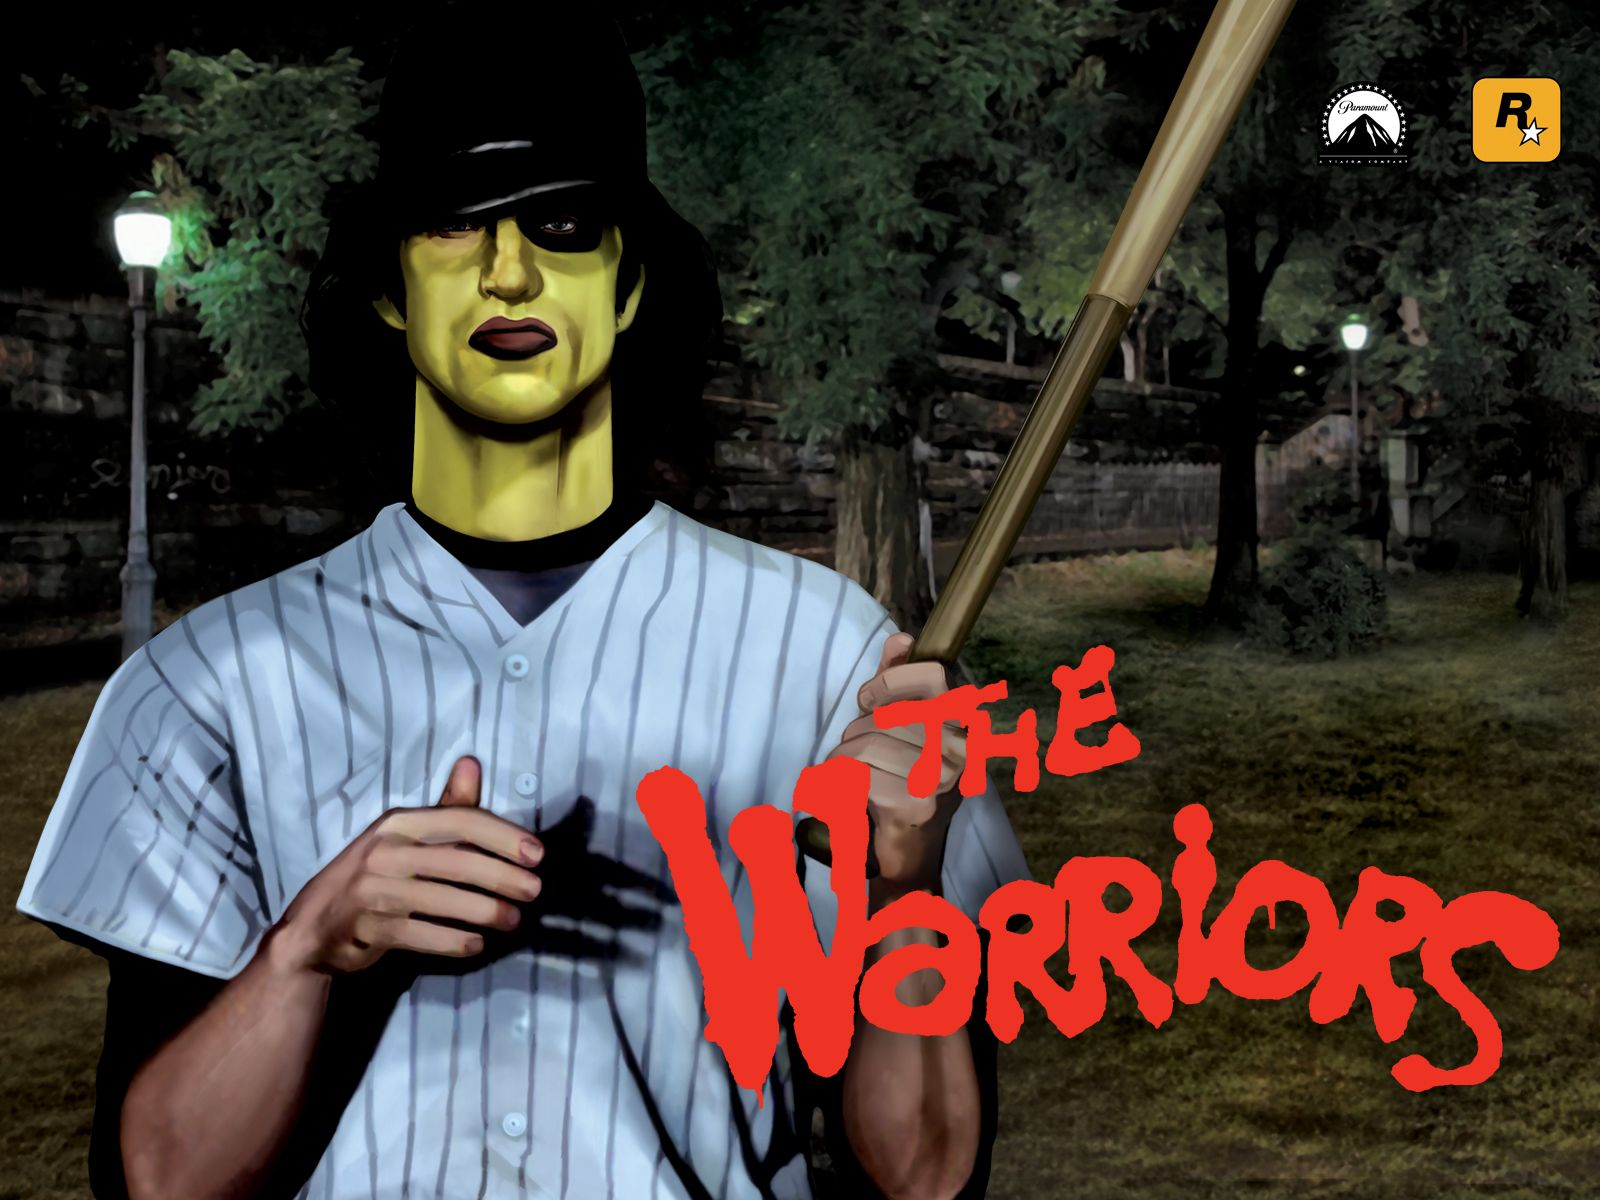 The Warriors Baseball Furies Warrior Movie Warrior The Warriors Baseball Furies